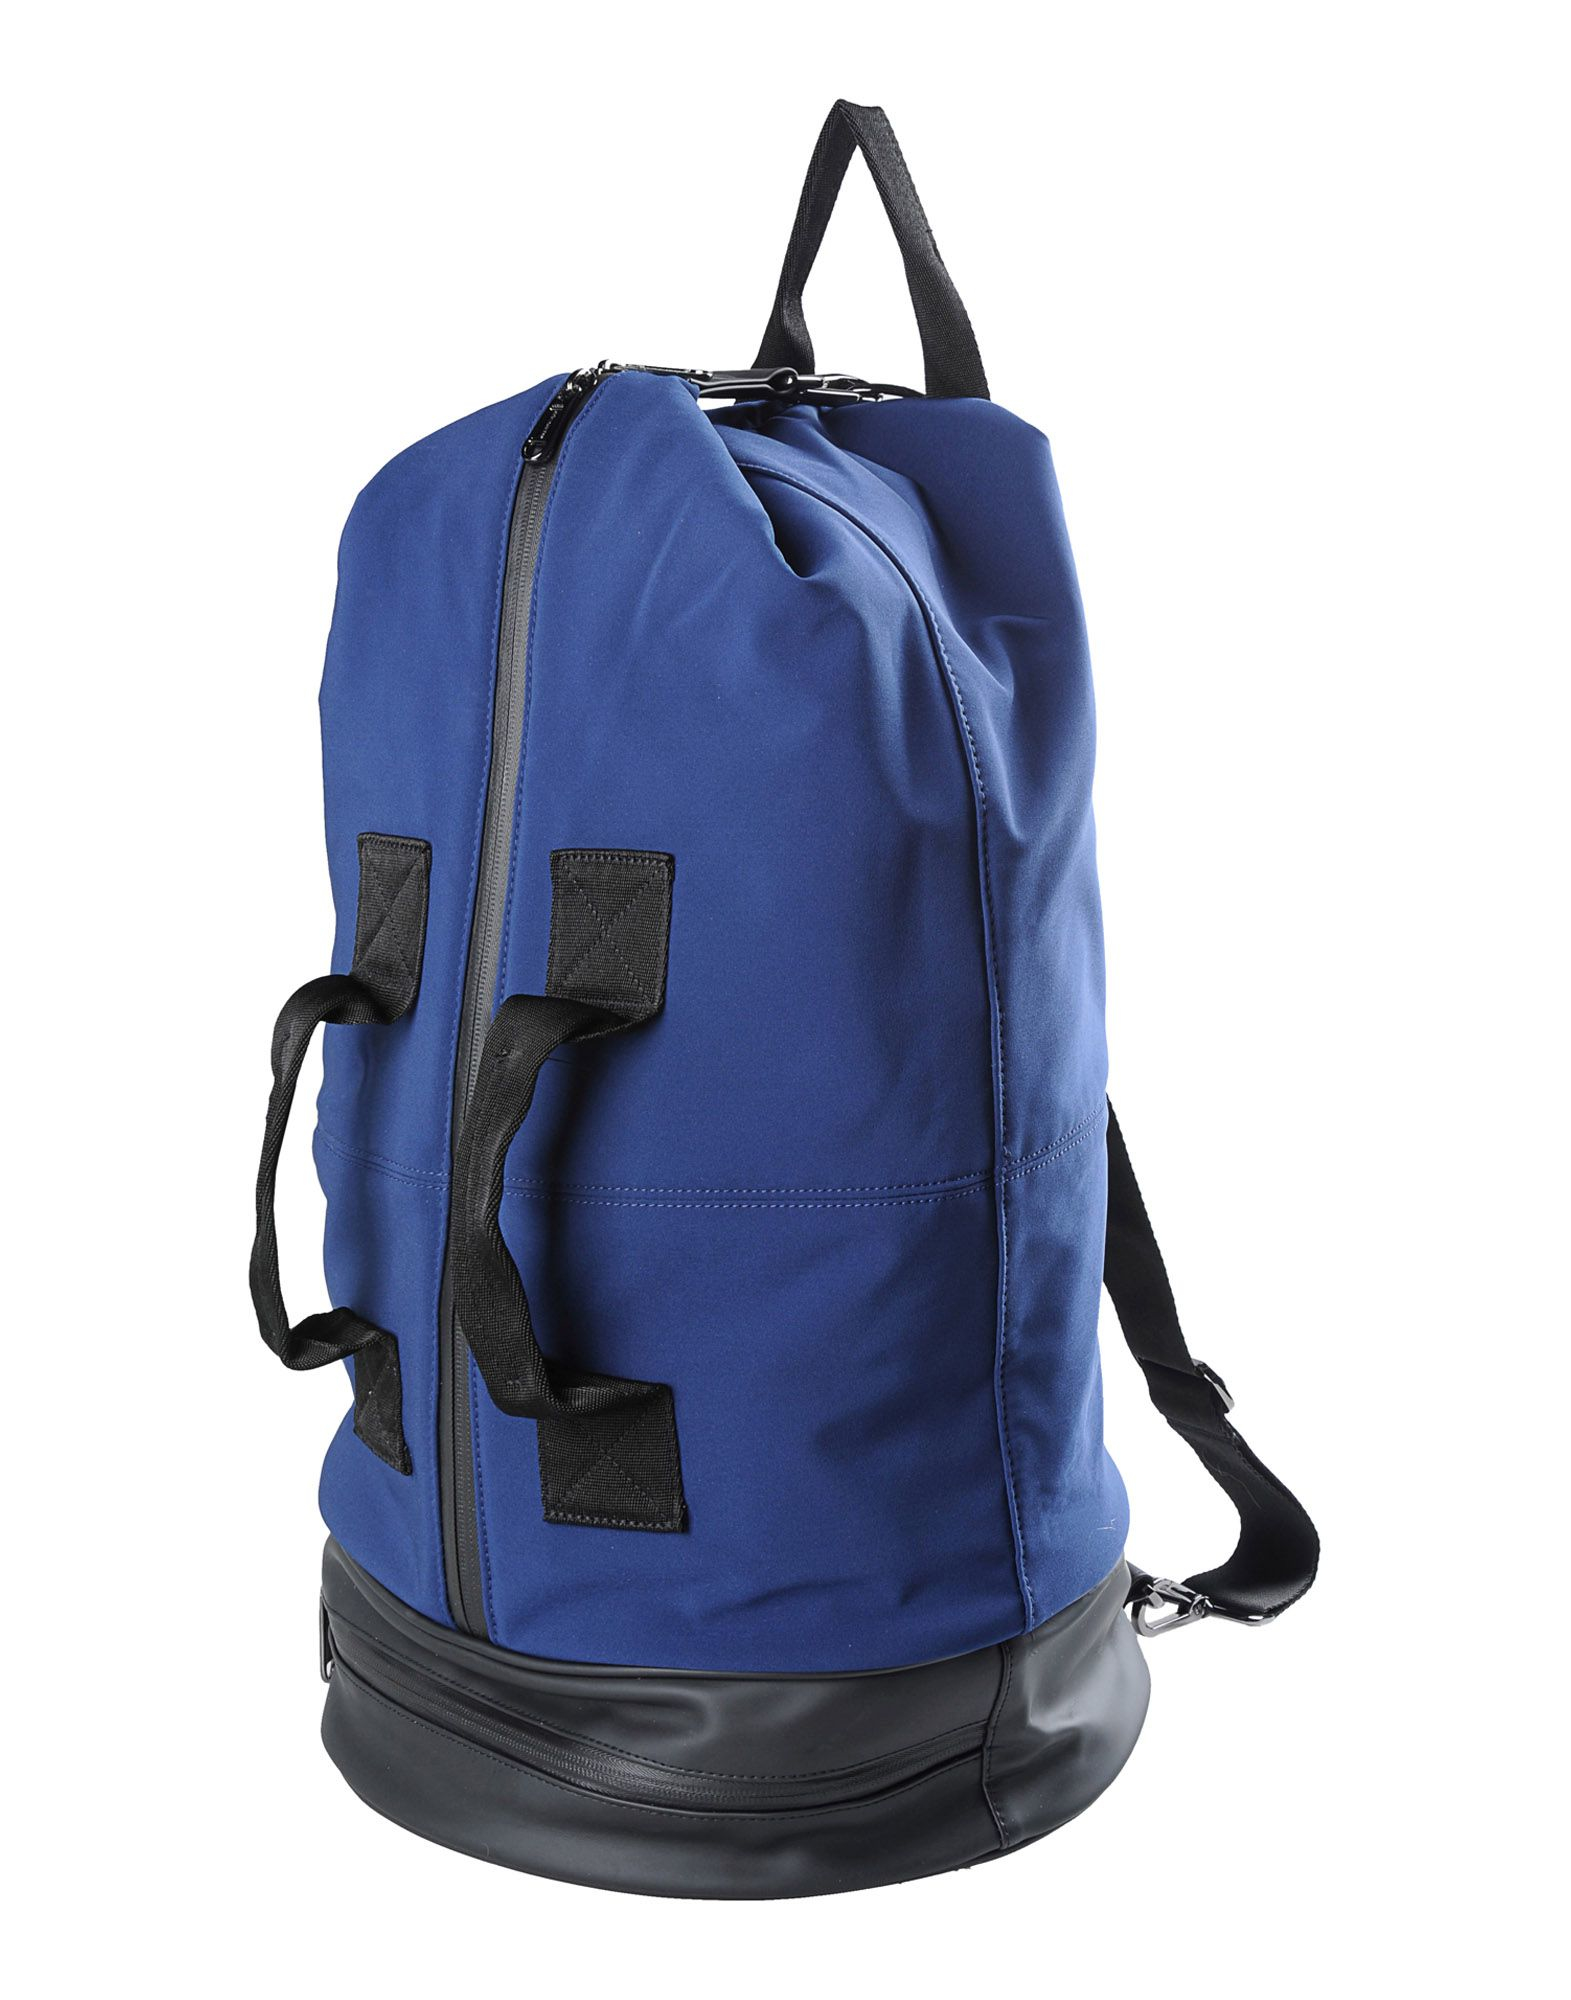 adidas by stella mccartney 39 sports 39 backpack in blue save 8 lyst. Black Bedroom Furniture Sets. Home Design Ideas